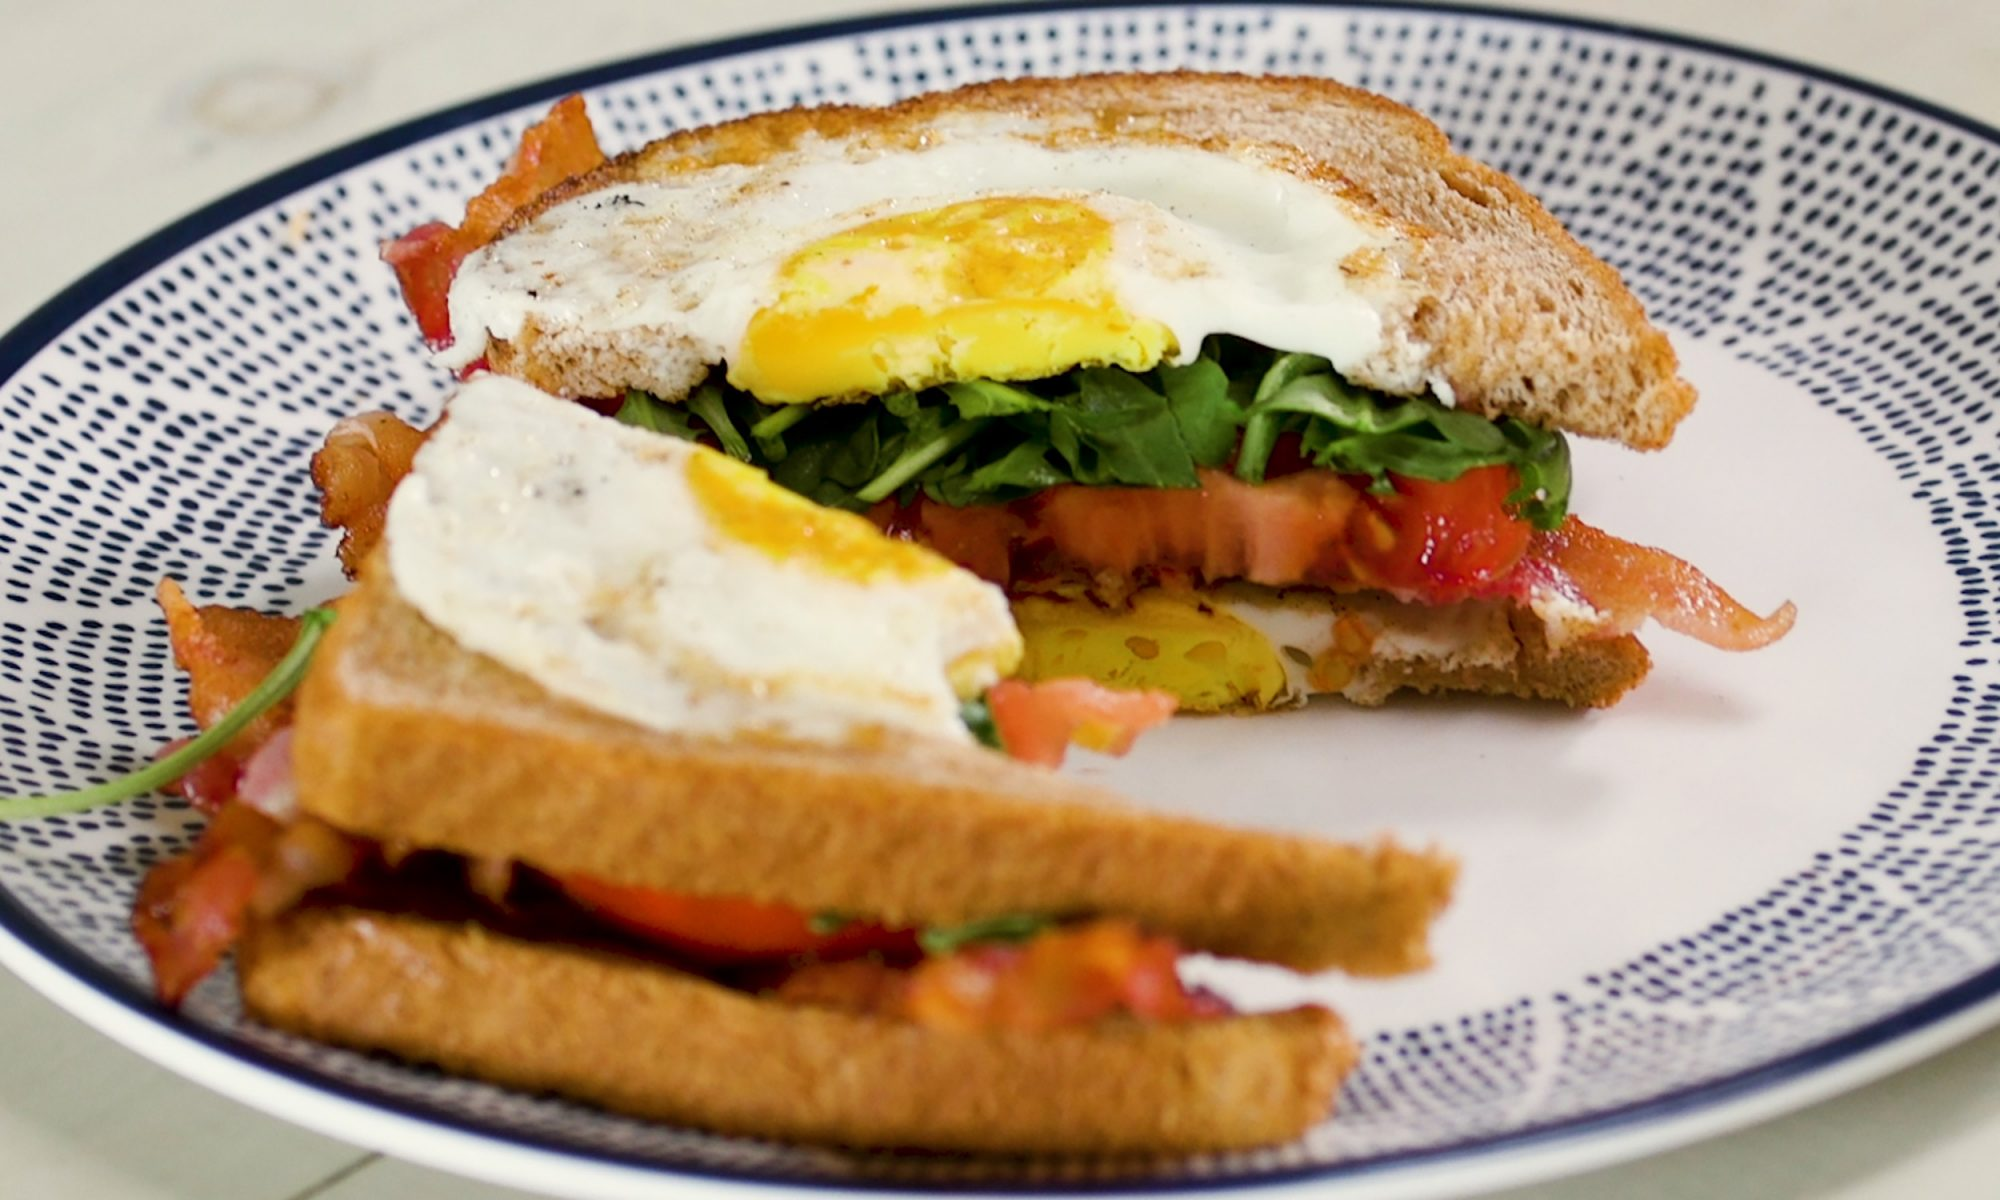 Egg-in-a-Hole BLT